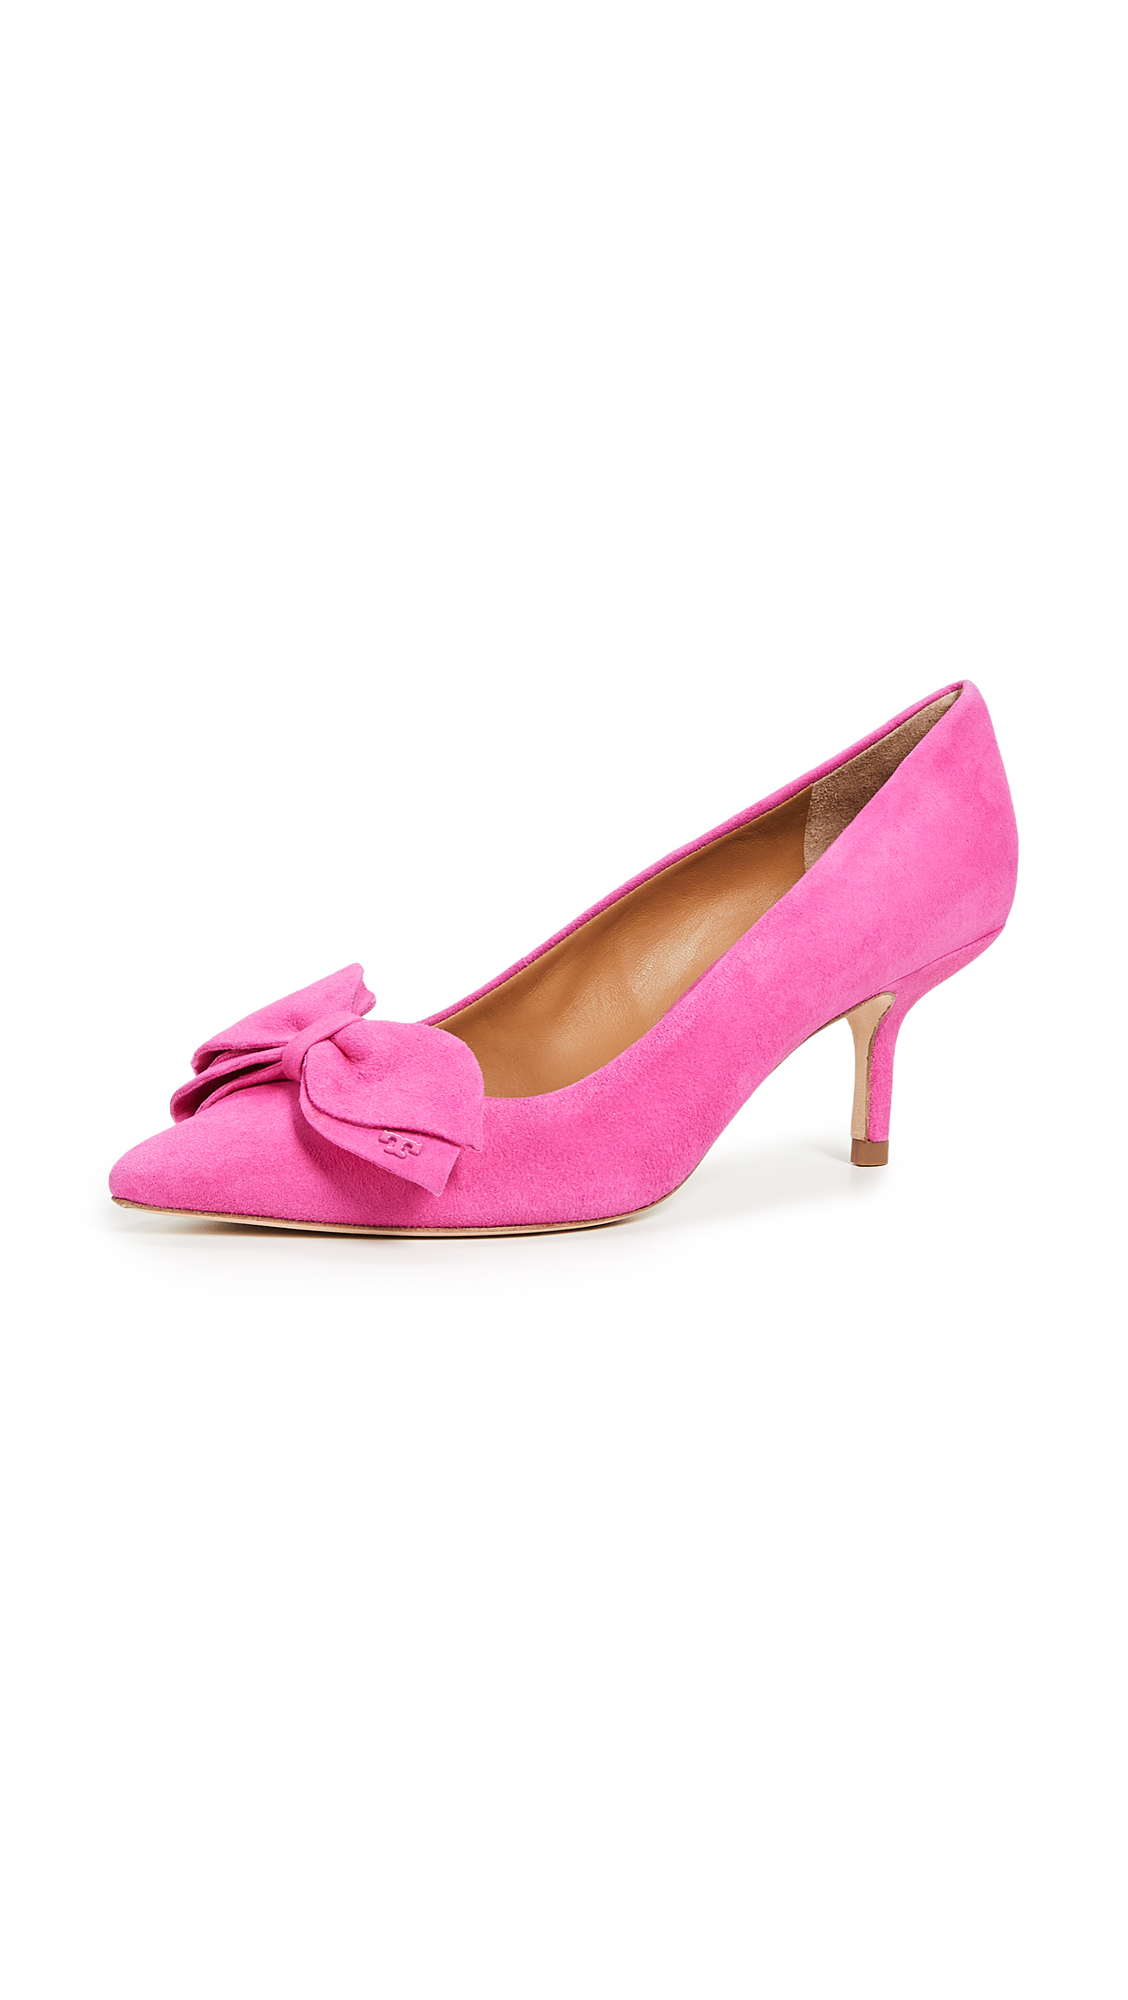 Tory Burch Rosalind Pumps